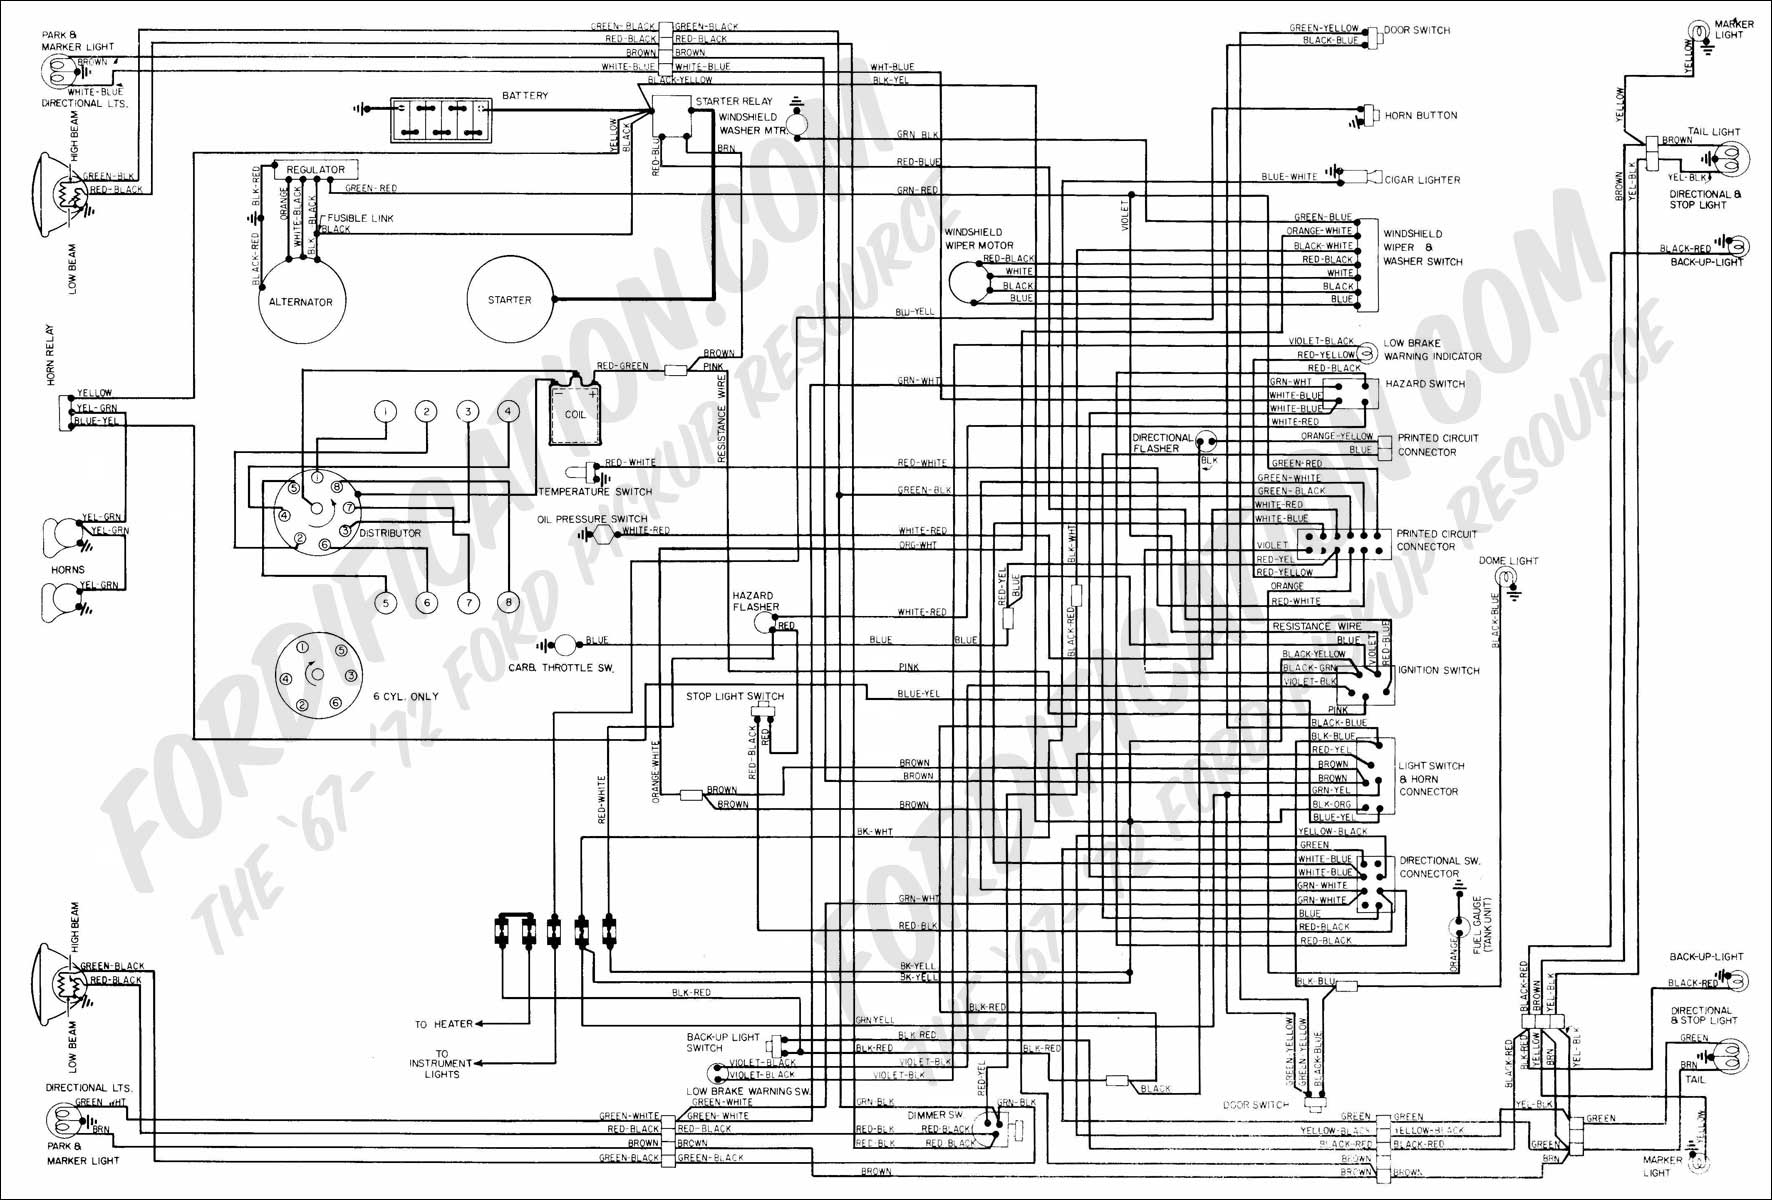 wiring diagram 72_quick ford truck technical drawings and schematics section h wiring 2005 f350 wiring diagram at panicattacktreatment.co